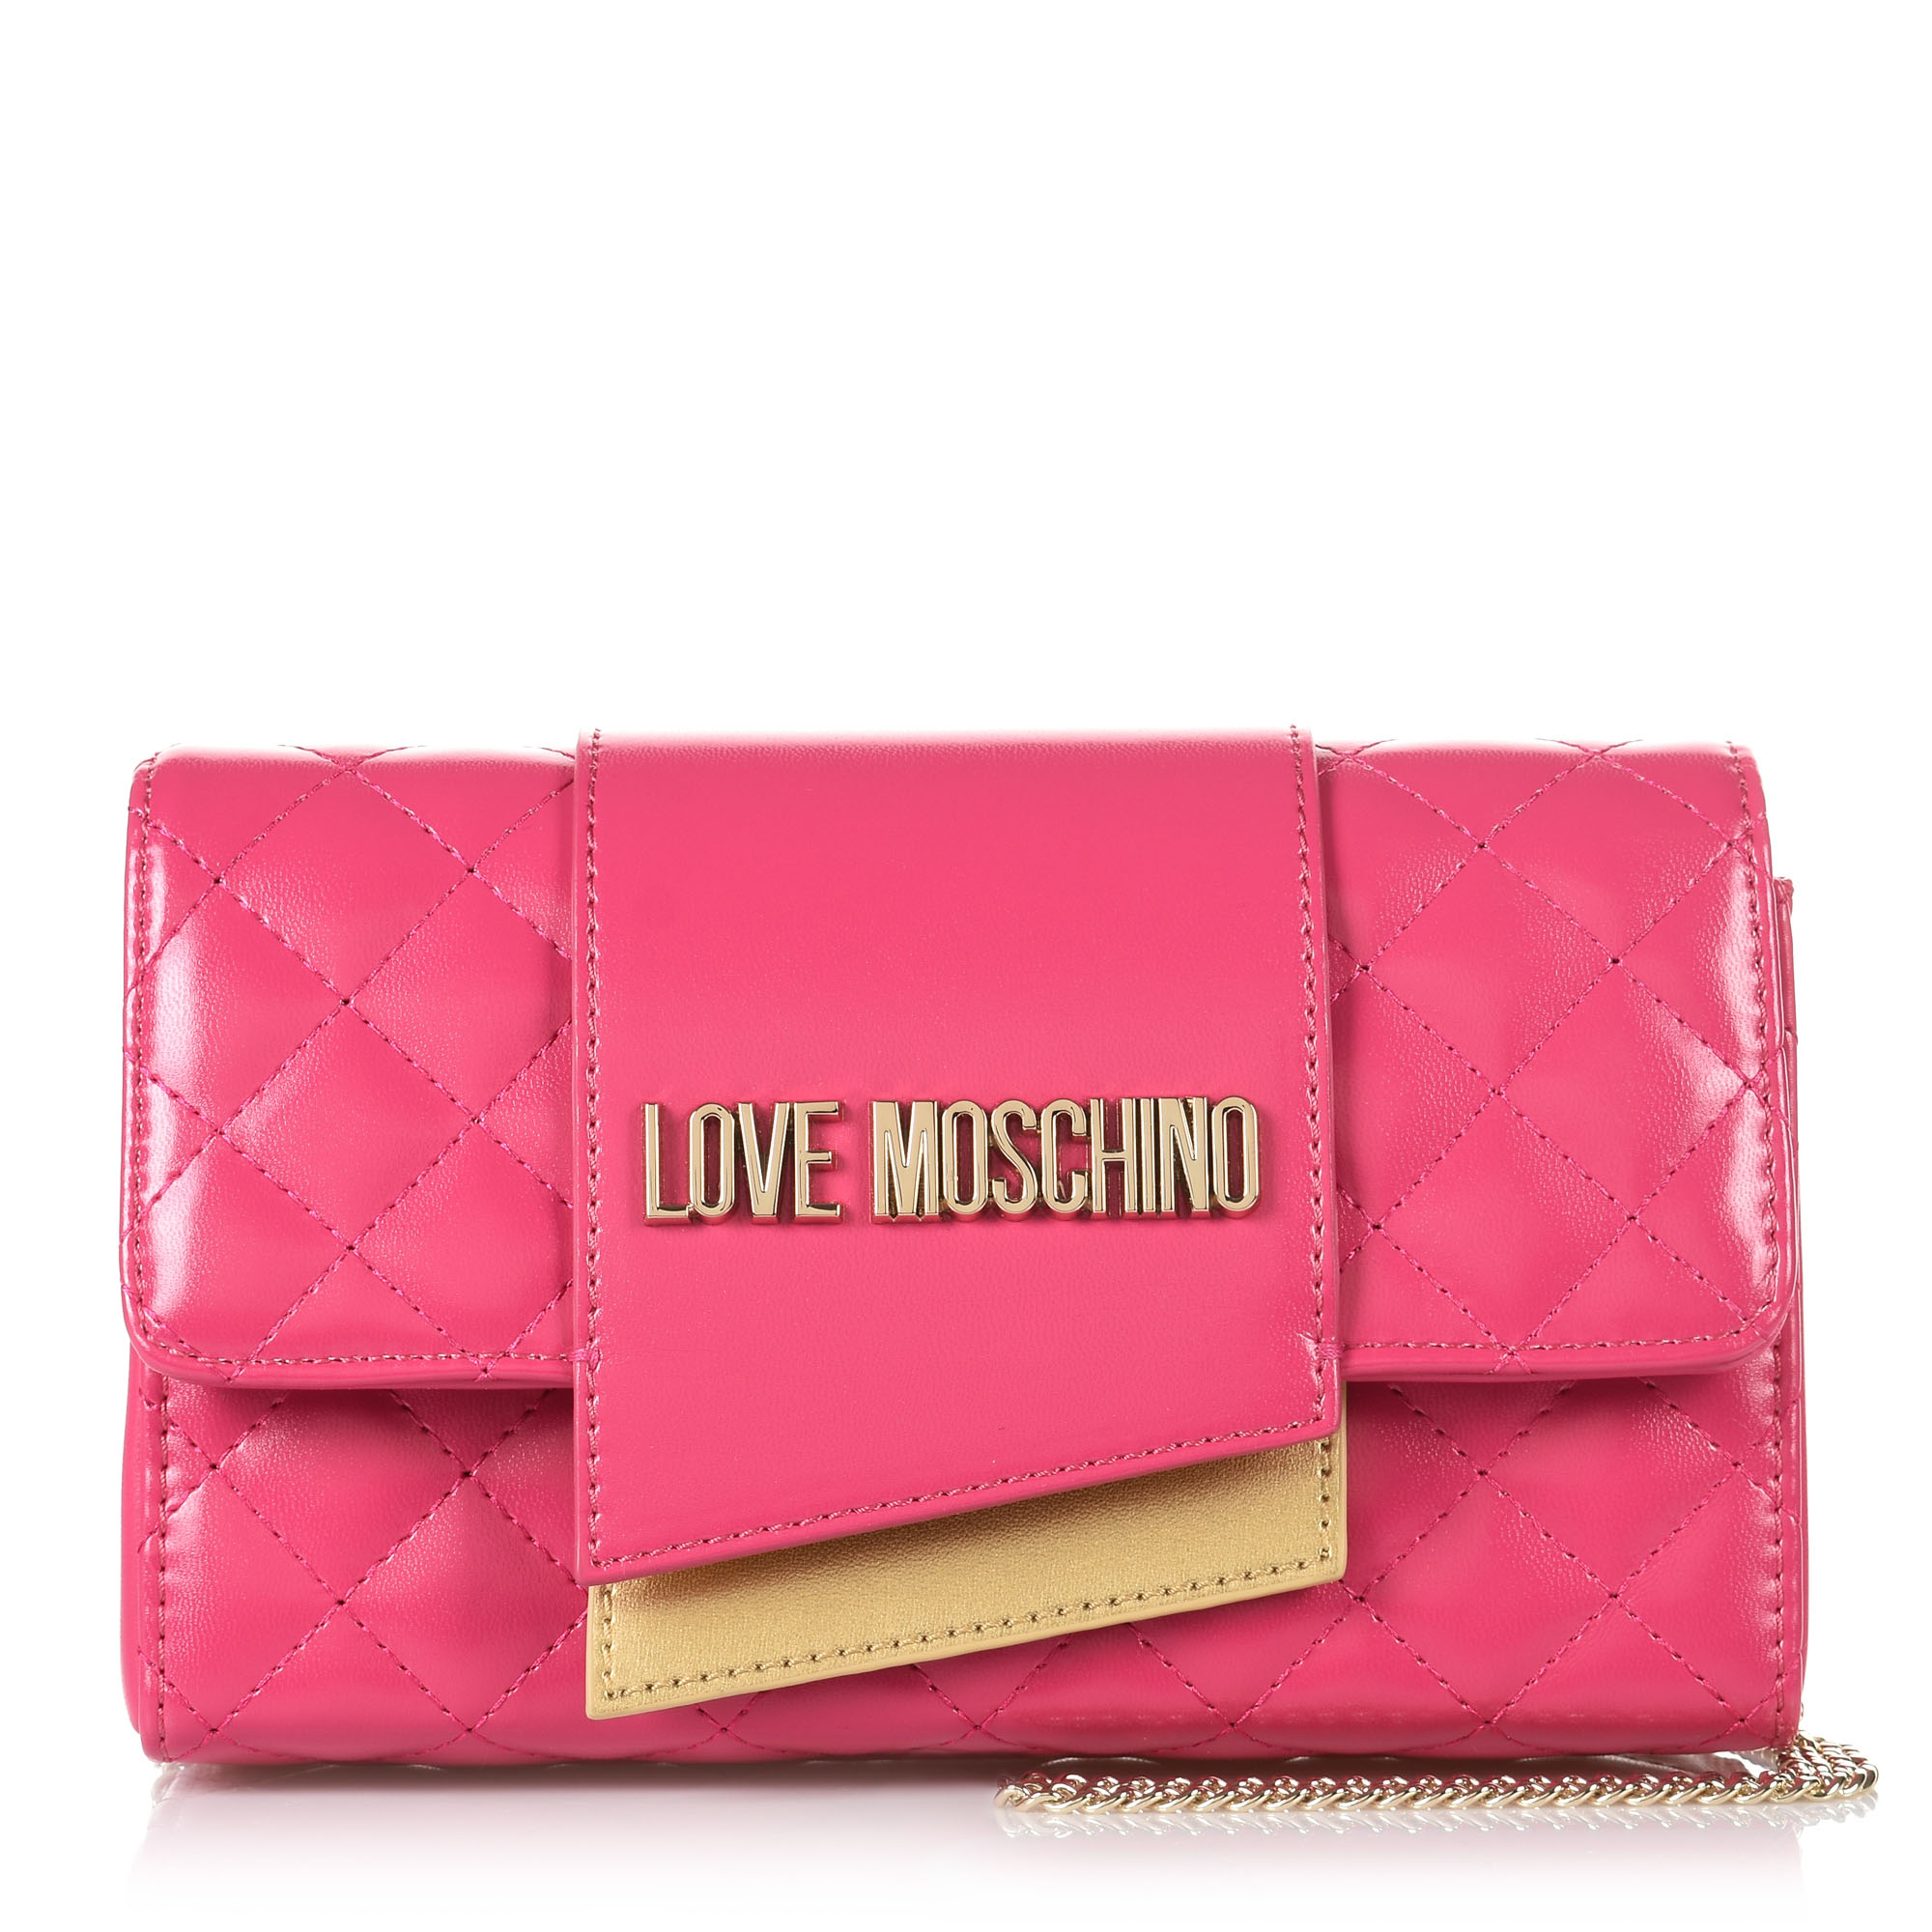 8b3a723355 Brand Bags Τσαντάκι Ώμου-Χιαστί Love Moschino Borsa Quilted Nappa  JC4295PP07KA